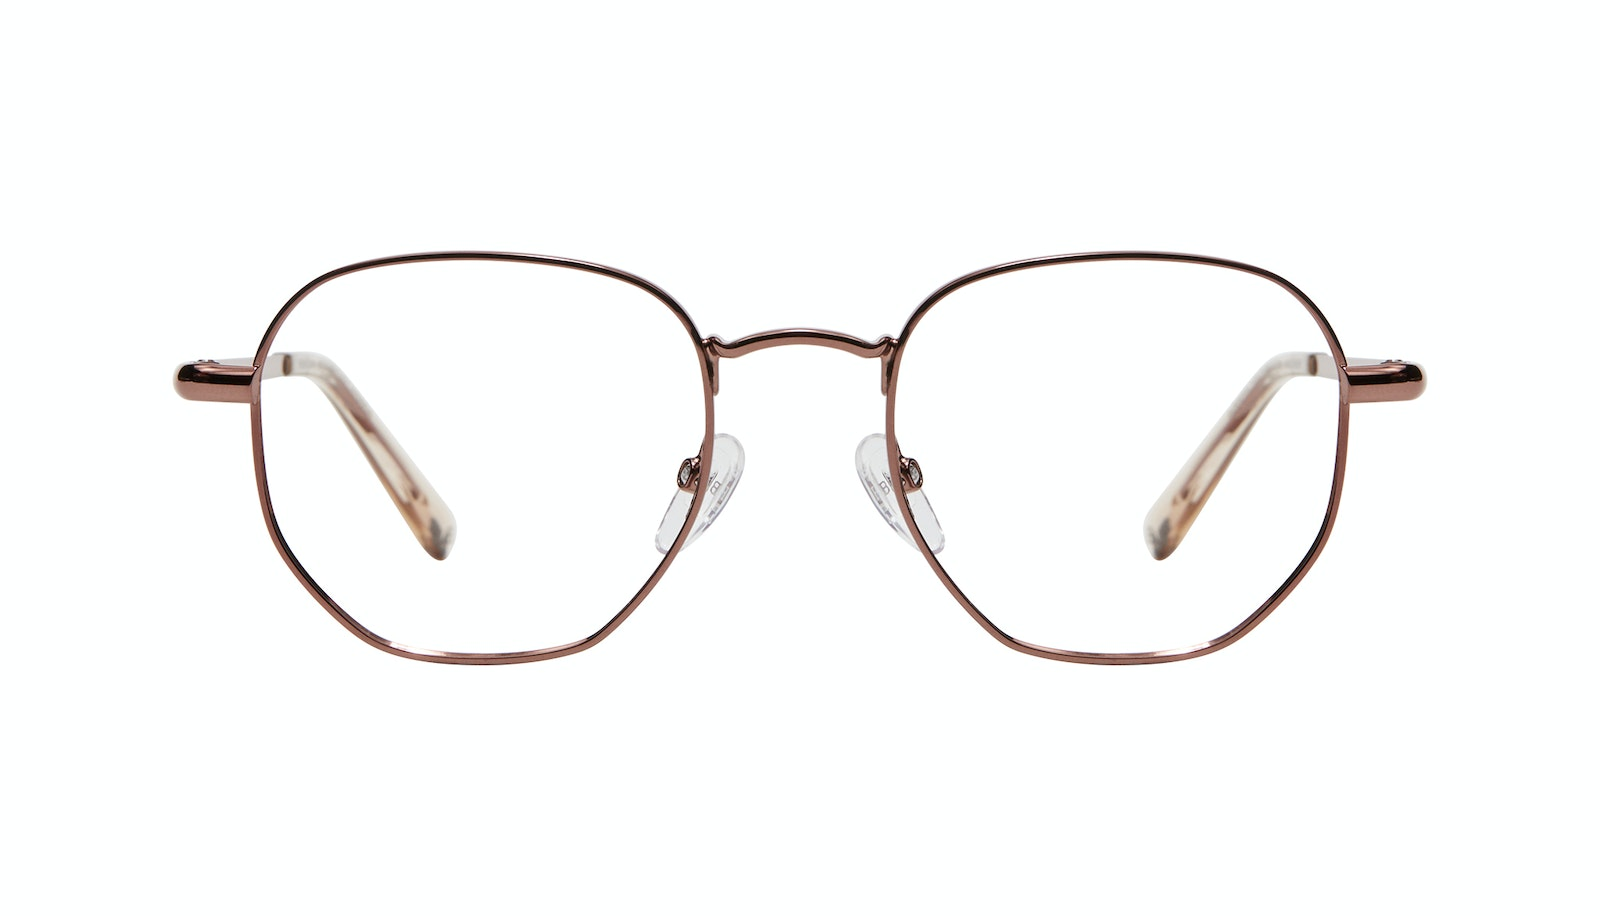 Affordable Fashion Glasses Round Eyeglasses Women Aura Copper